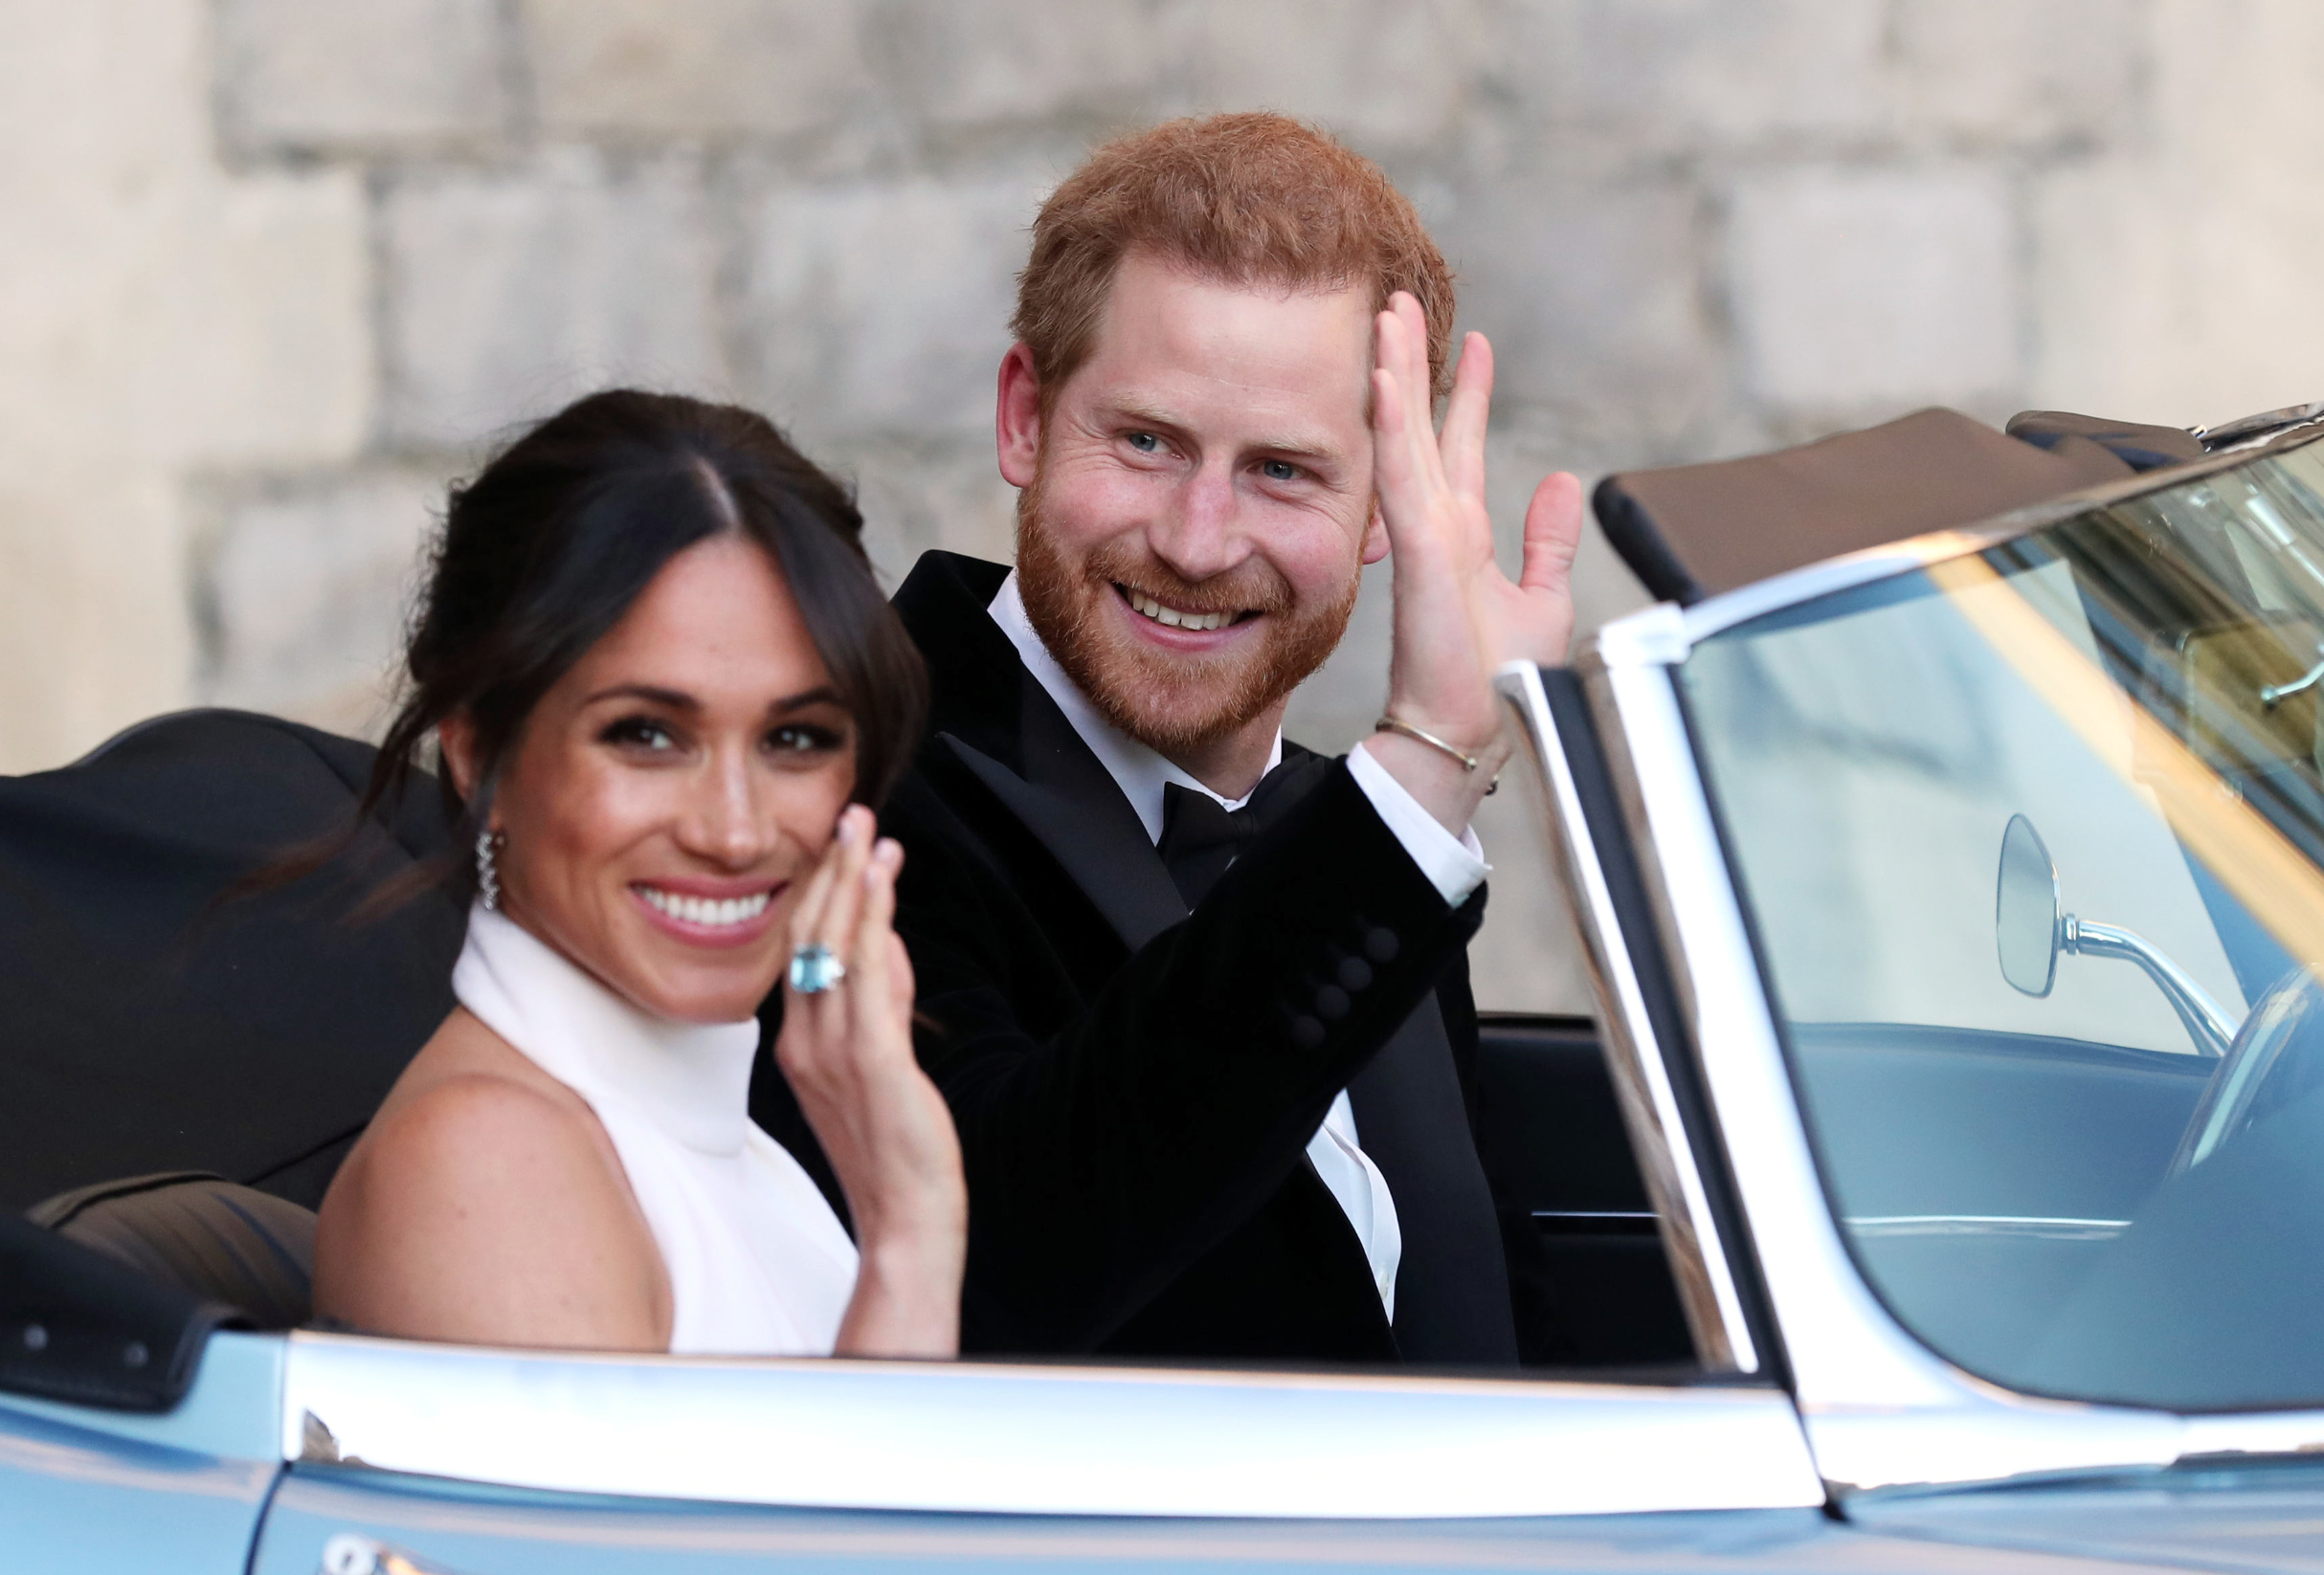 The newly married Duke and Duchess of Sussex, Meghan Markle and Prince Harry, leaving Windsor Castle after their wedding to attend an evening reception at Frogmore House The wedding of Prince Harry and Meghan Markle, Open-top car, Windsor, Berkshire, UK - 19 May 2018,Image: 491696088, License: Rights-managed, Restrictions: , Model Release: no, Credit line: - / Shutterstock Editorial / Profimedia